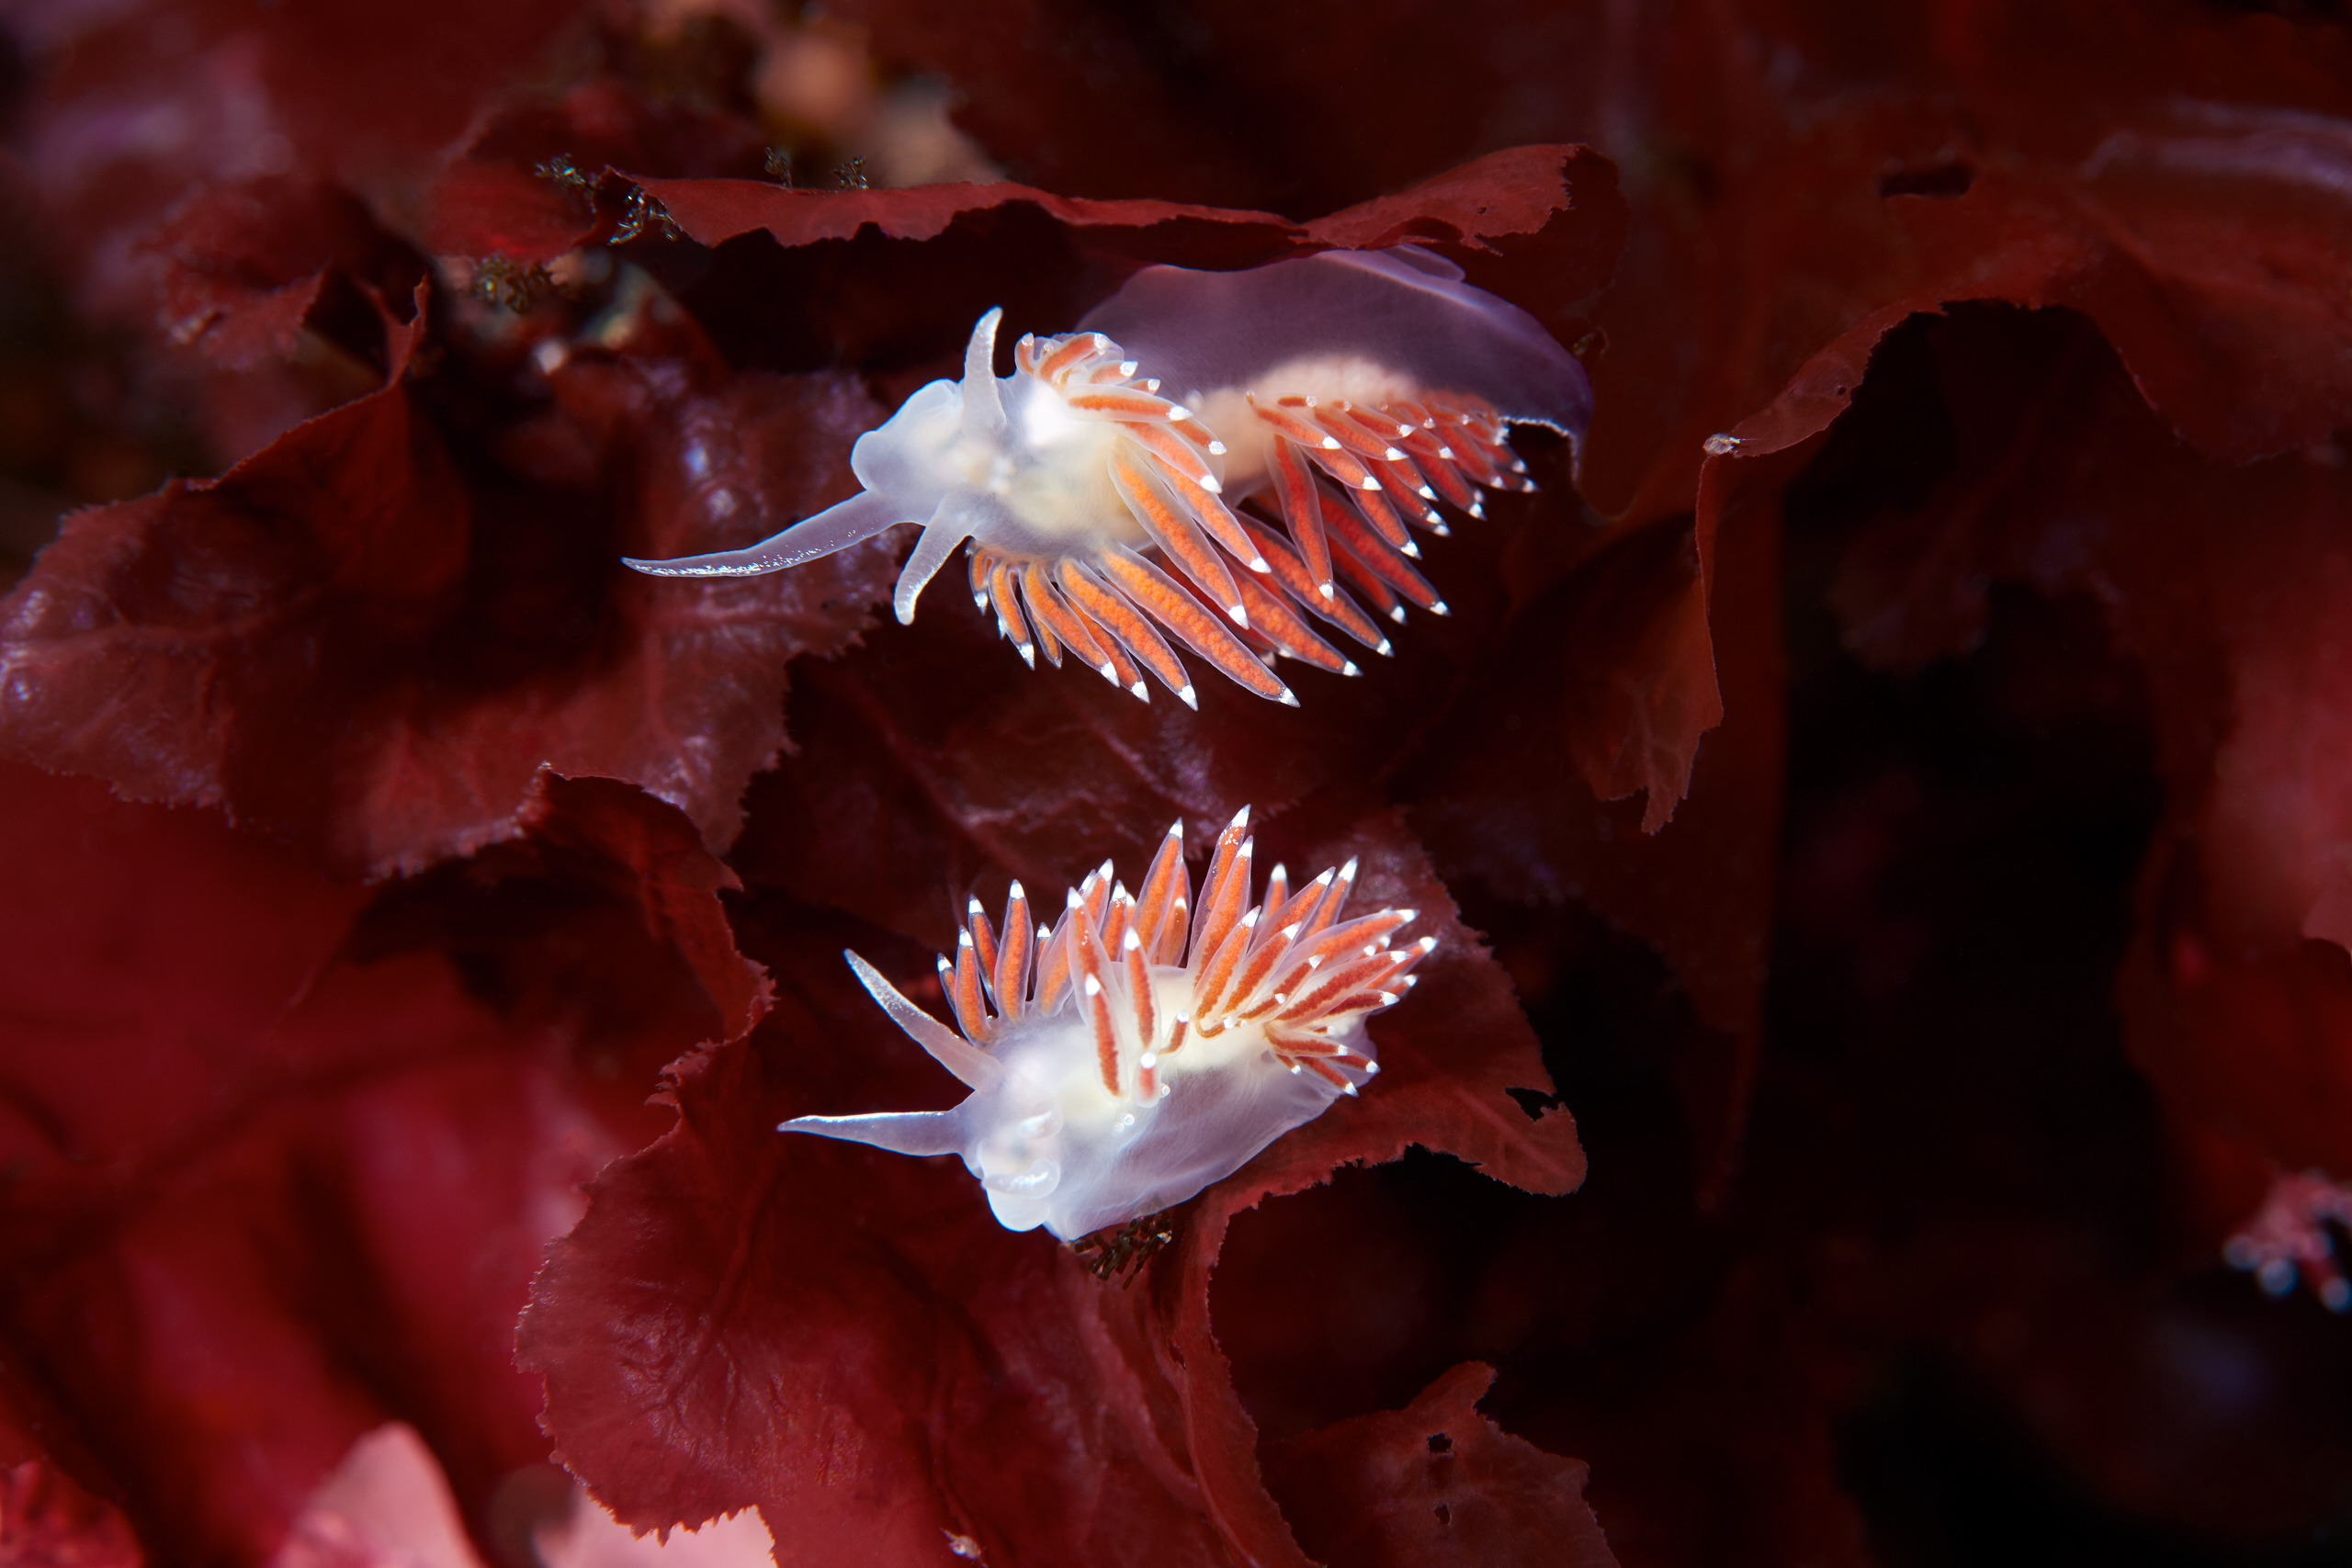 Nudibranchia – Sea slug – Flabellina verrucosa 1